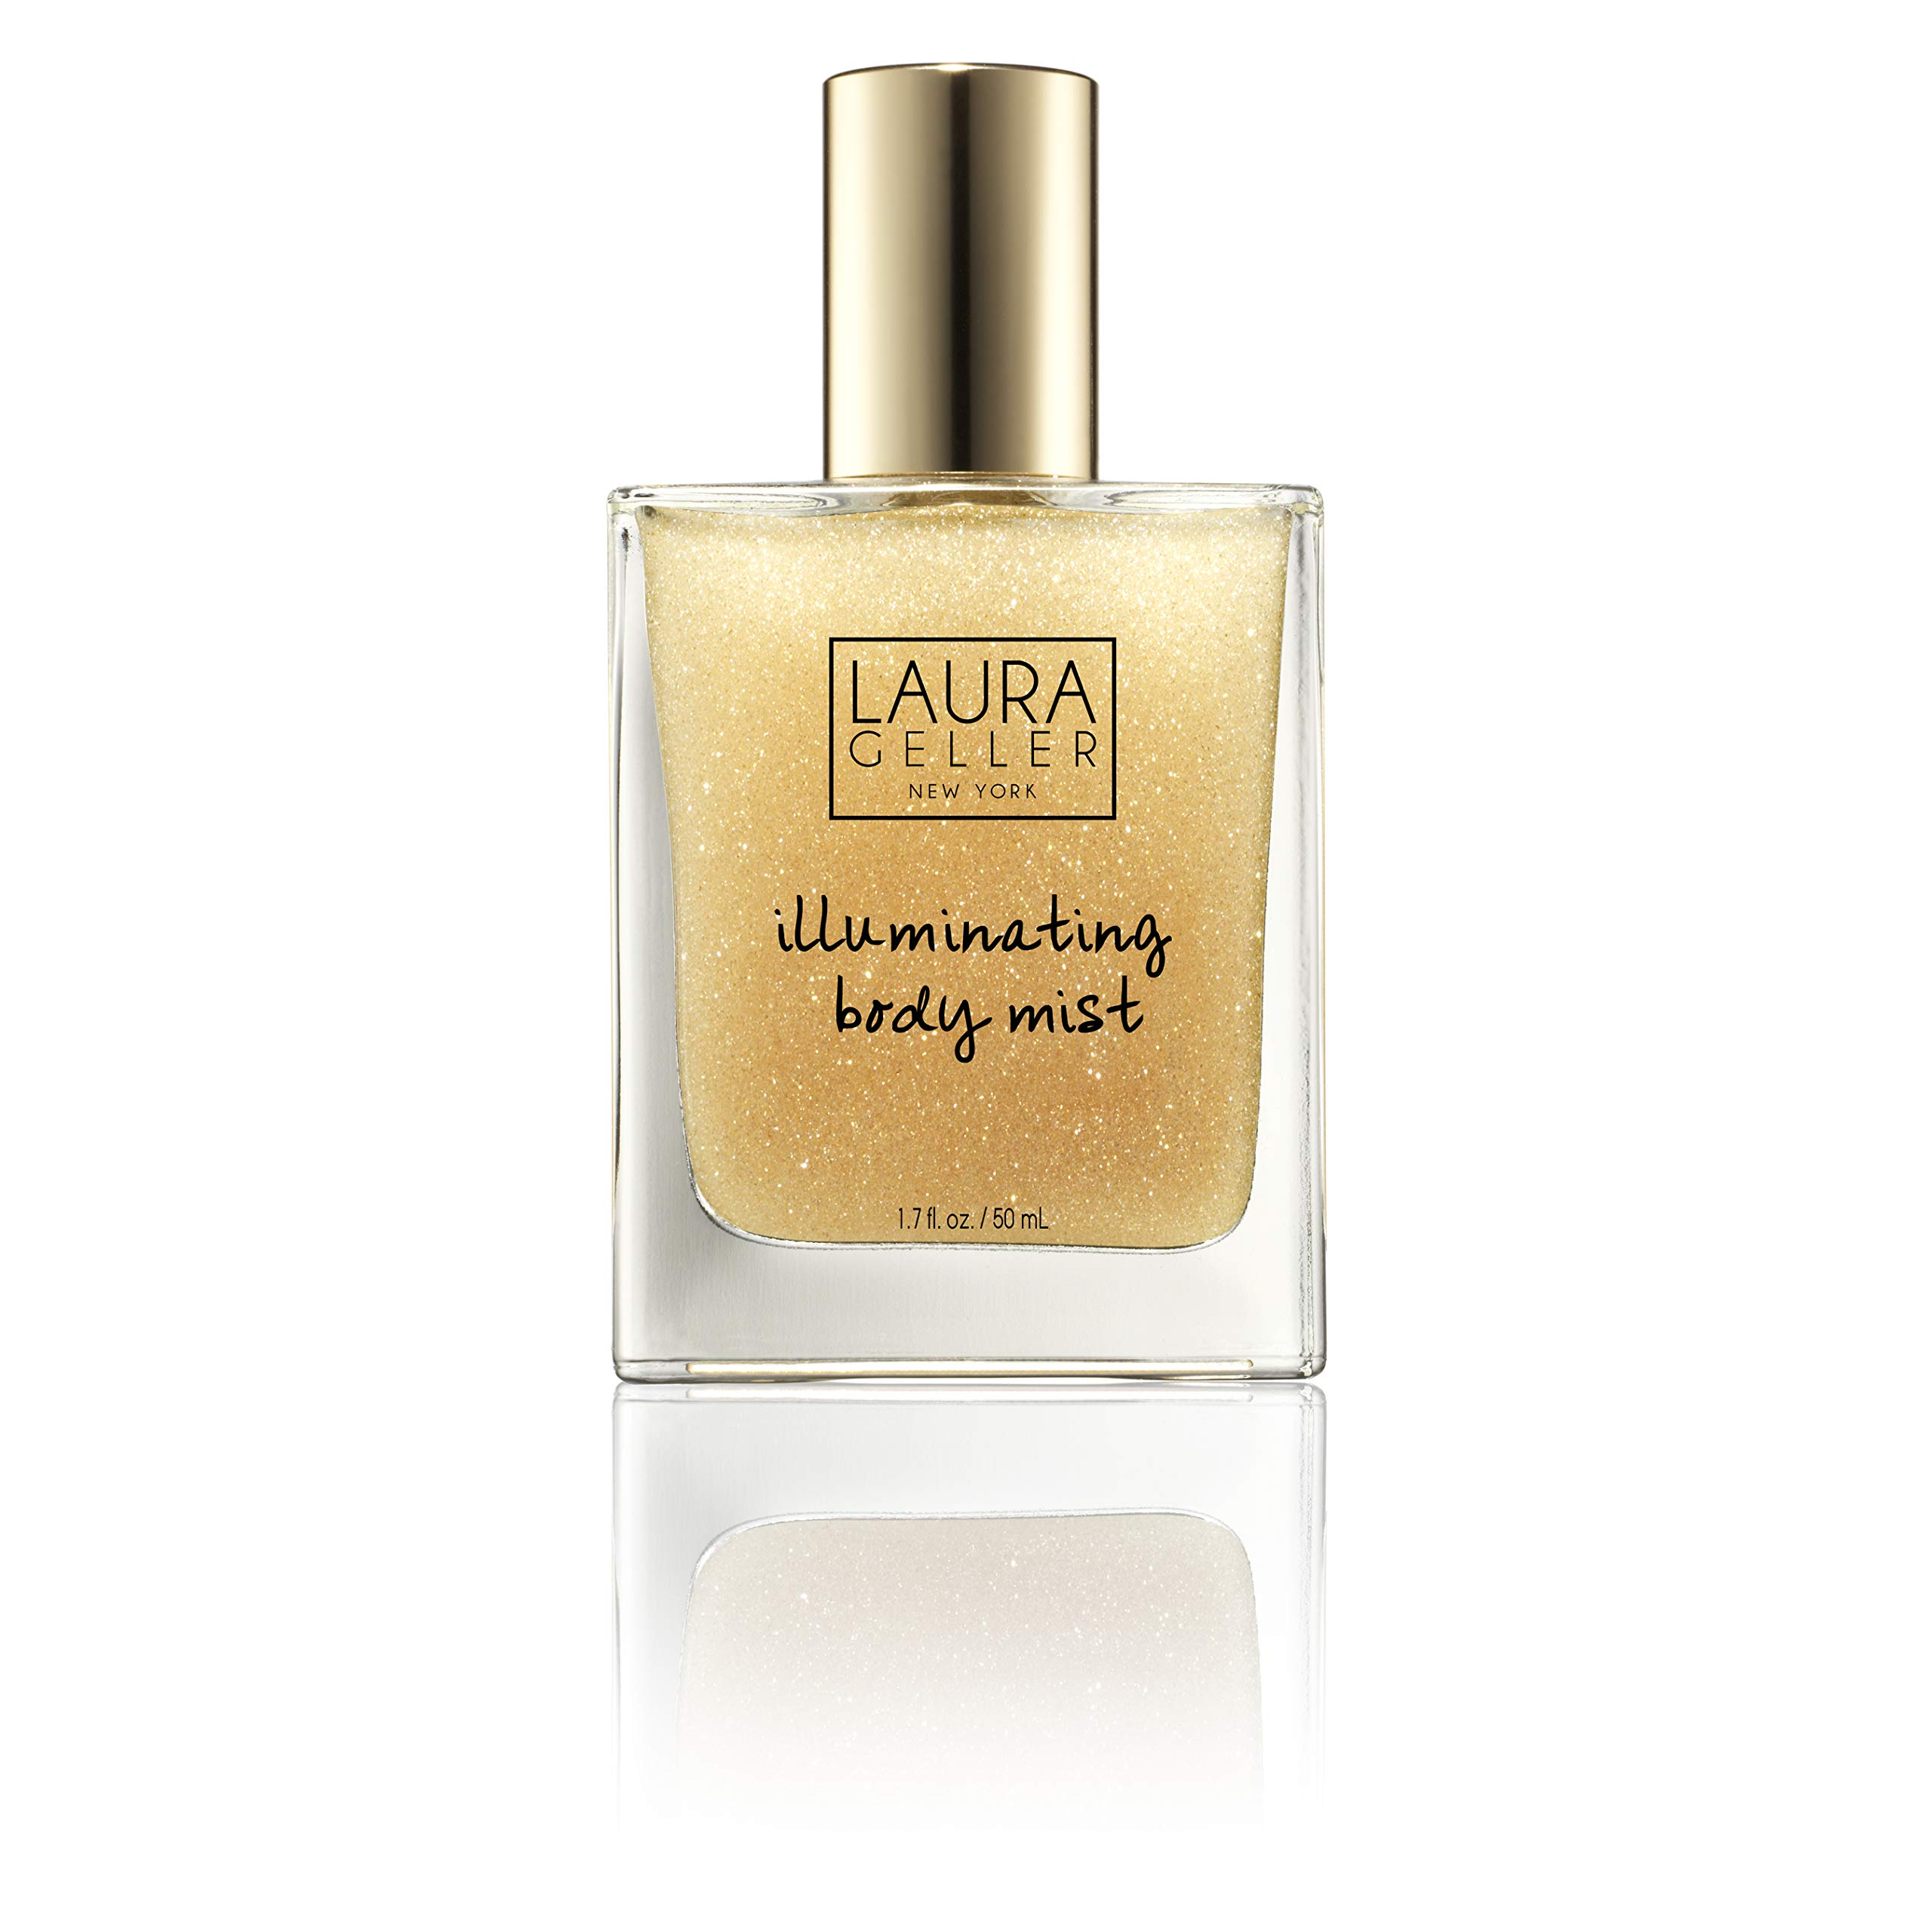 Laura Geller New York Illuminating Body Mist, 1.7 Fl. oz.